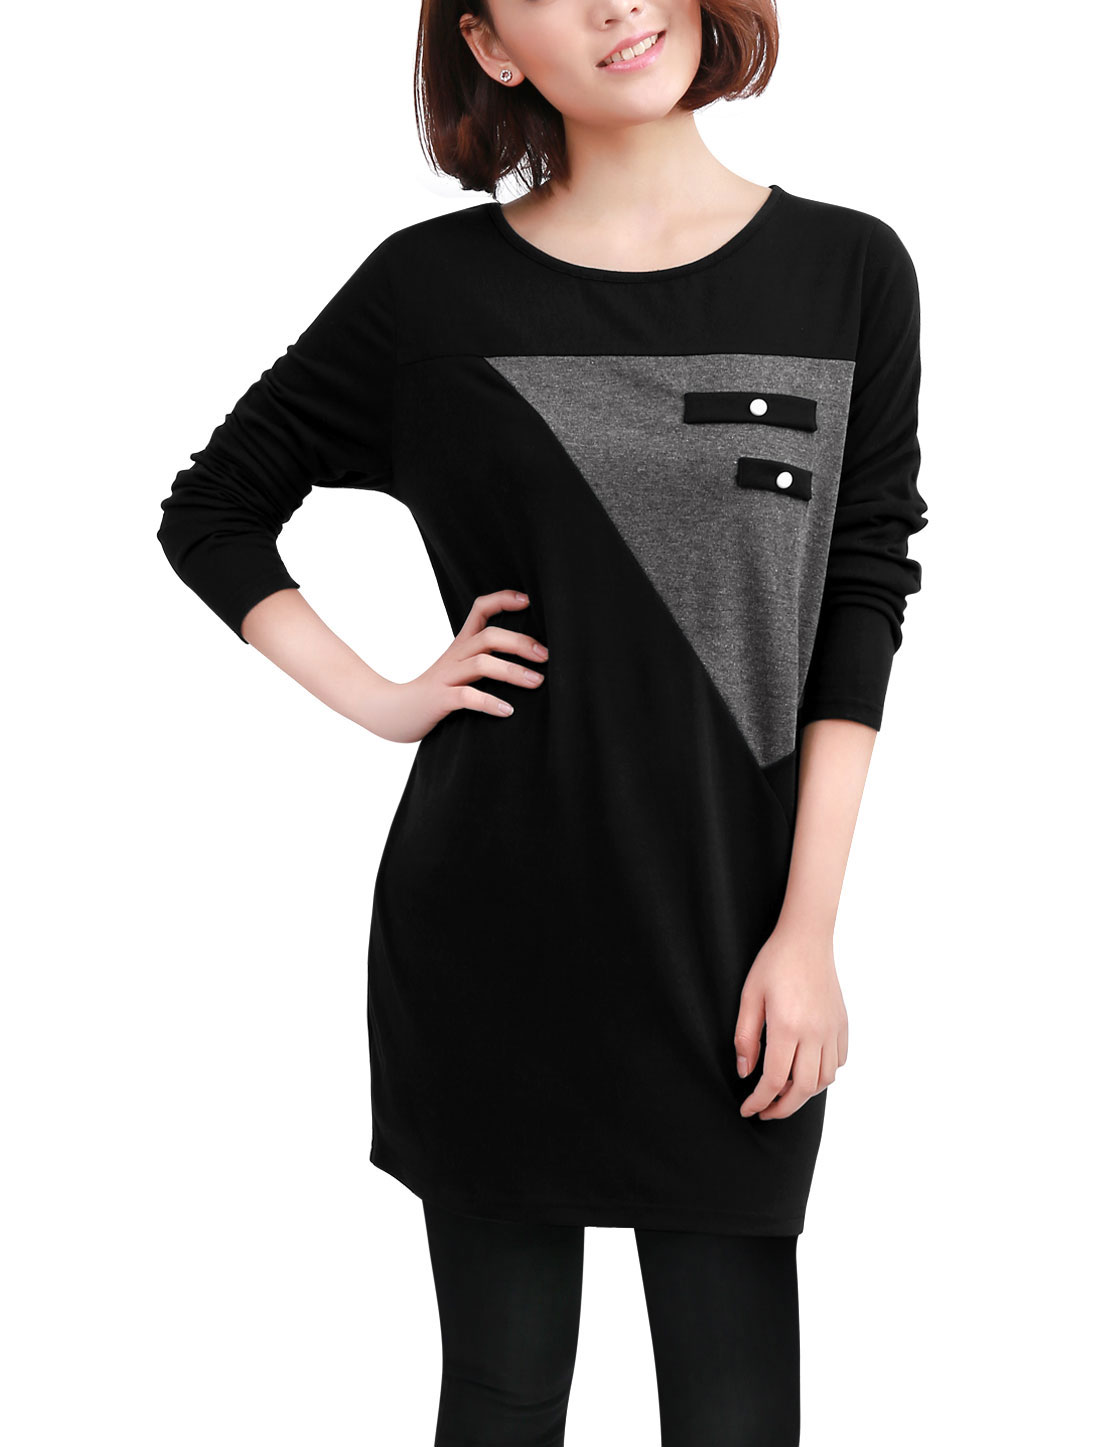 Lady Long Dolman Sleeves Pockets Decor Loose Top Shirt Black XS